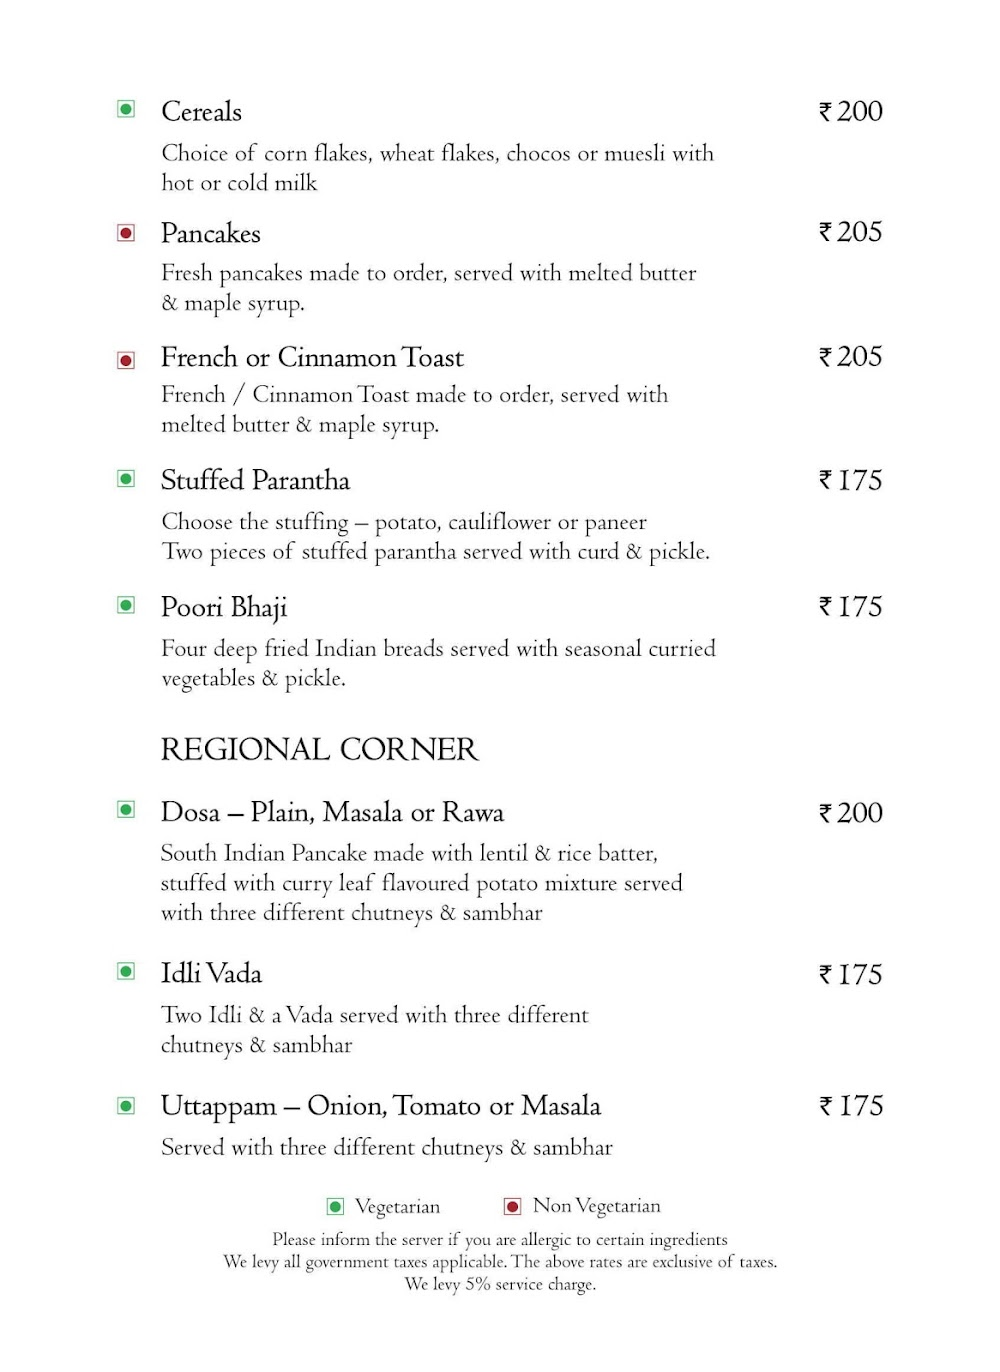 Branche - Golden Tulip Suites menu 1